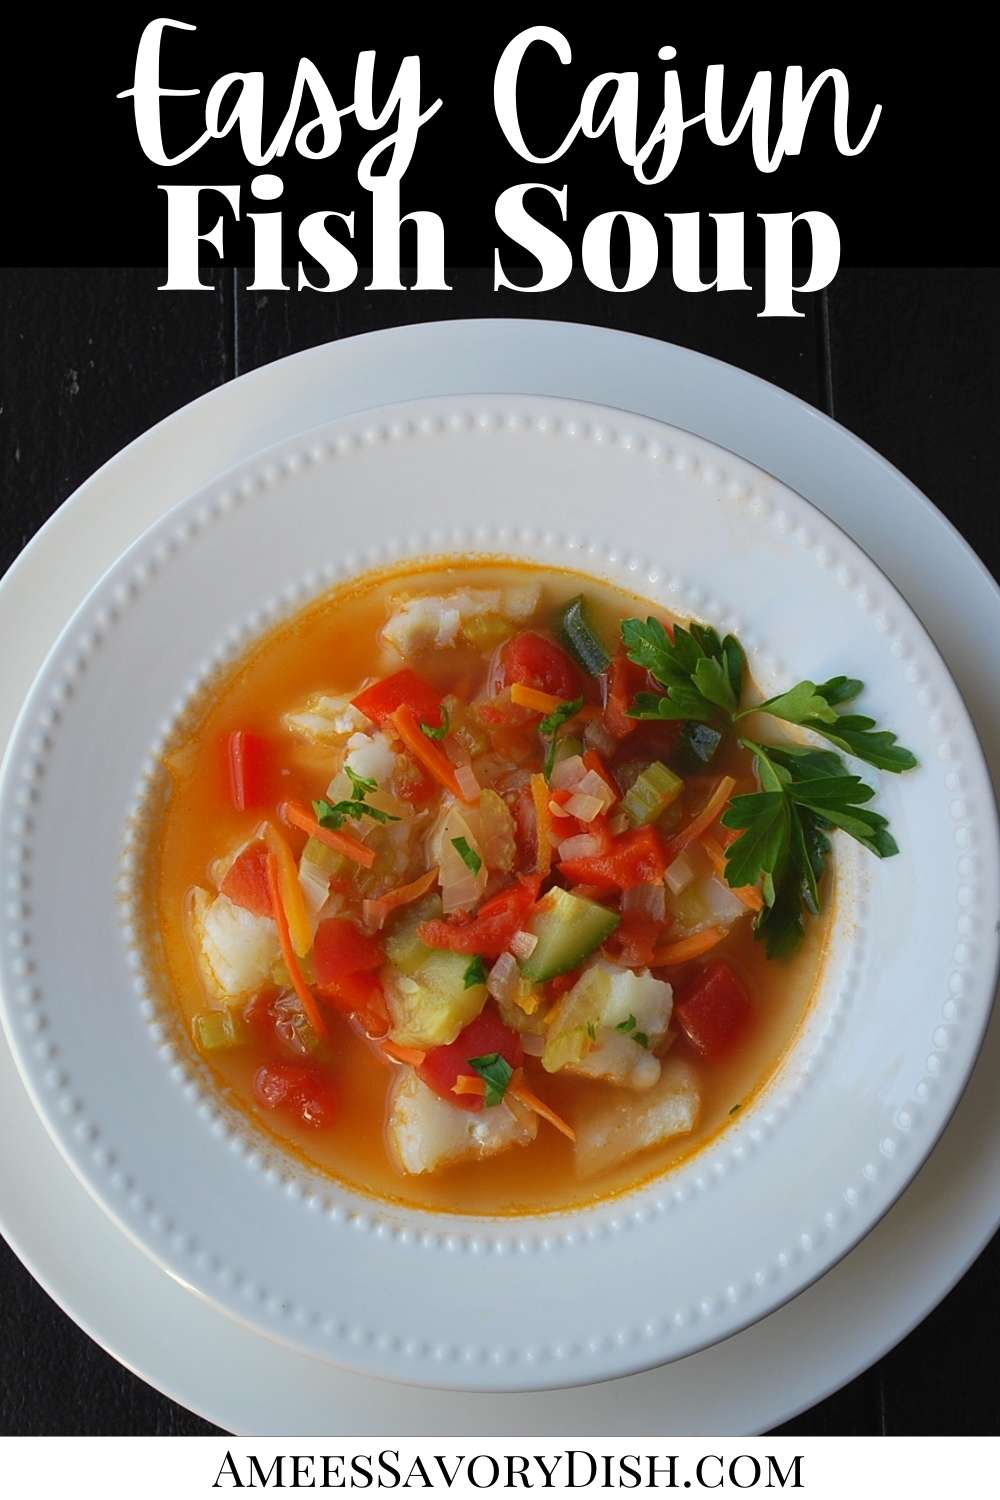 Cajun Fish Soup is a light, broth-based fish soup recipe made with fresh grouper, chicken broth, fresh vegetables, and Cajun seasoning. This seafood soup recipe is nutritious and crazy delicious!! #fishsoup #seafoodsoup #seafood #grouper #souprecipe via @Ameessavorydish